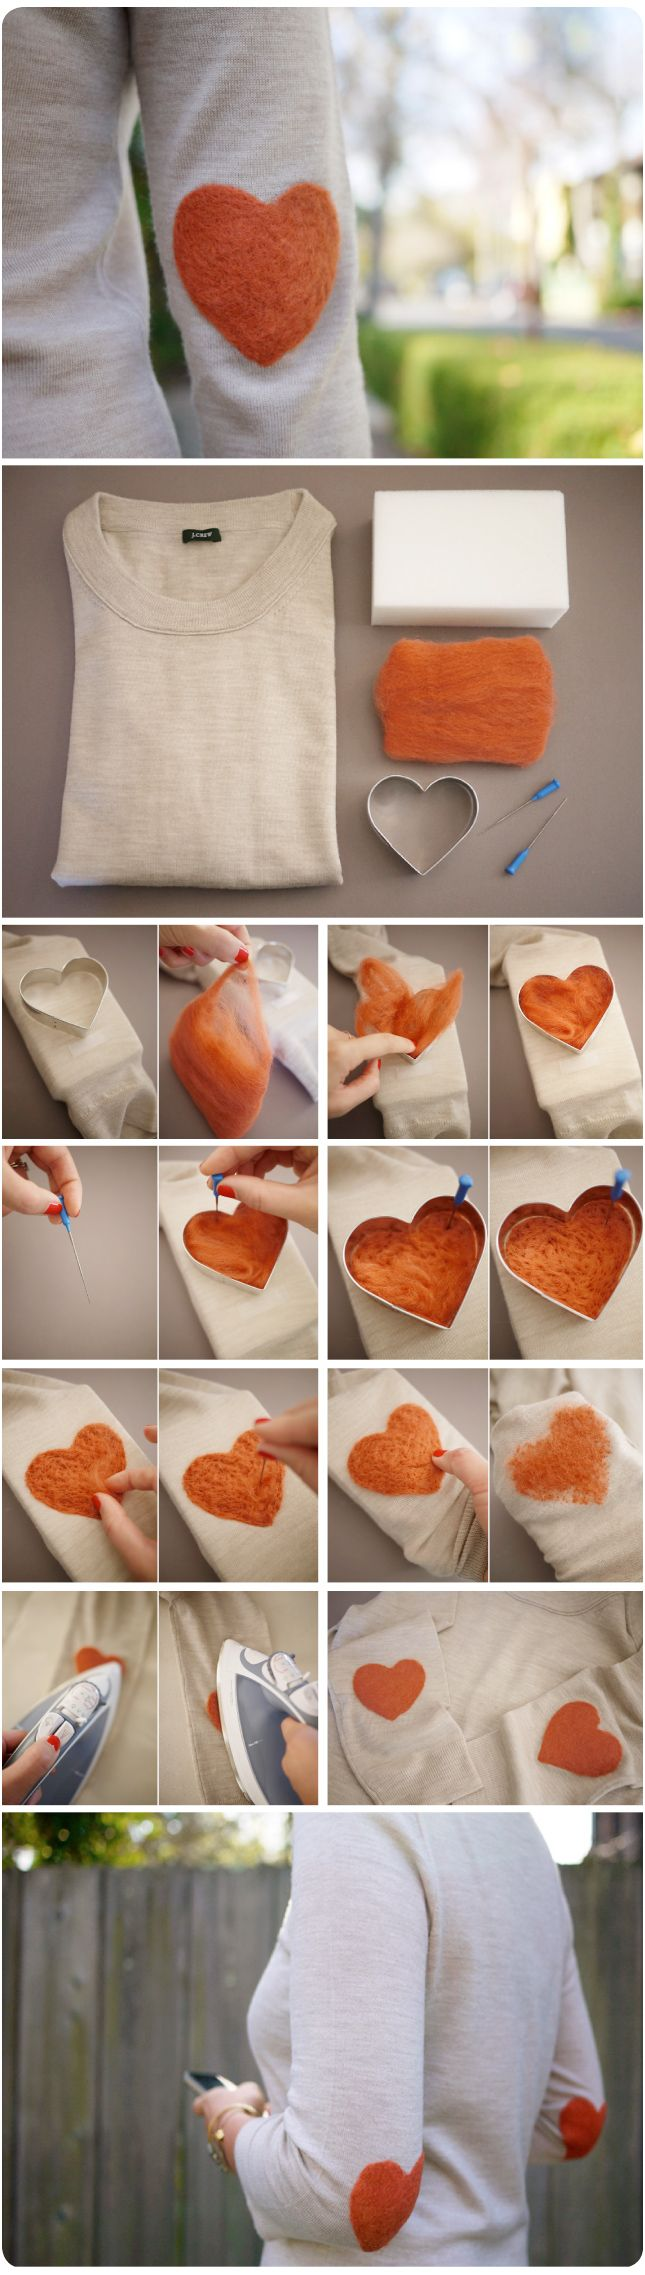 D.I.Y. Heart shaped elbow patches. Swoon.: Diy Ideas, Projects, Sweaters, Felt Wool, Elbow Patches, Cute Ideas, Needlefelt, Needle Felt, Felt Heart